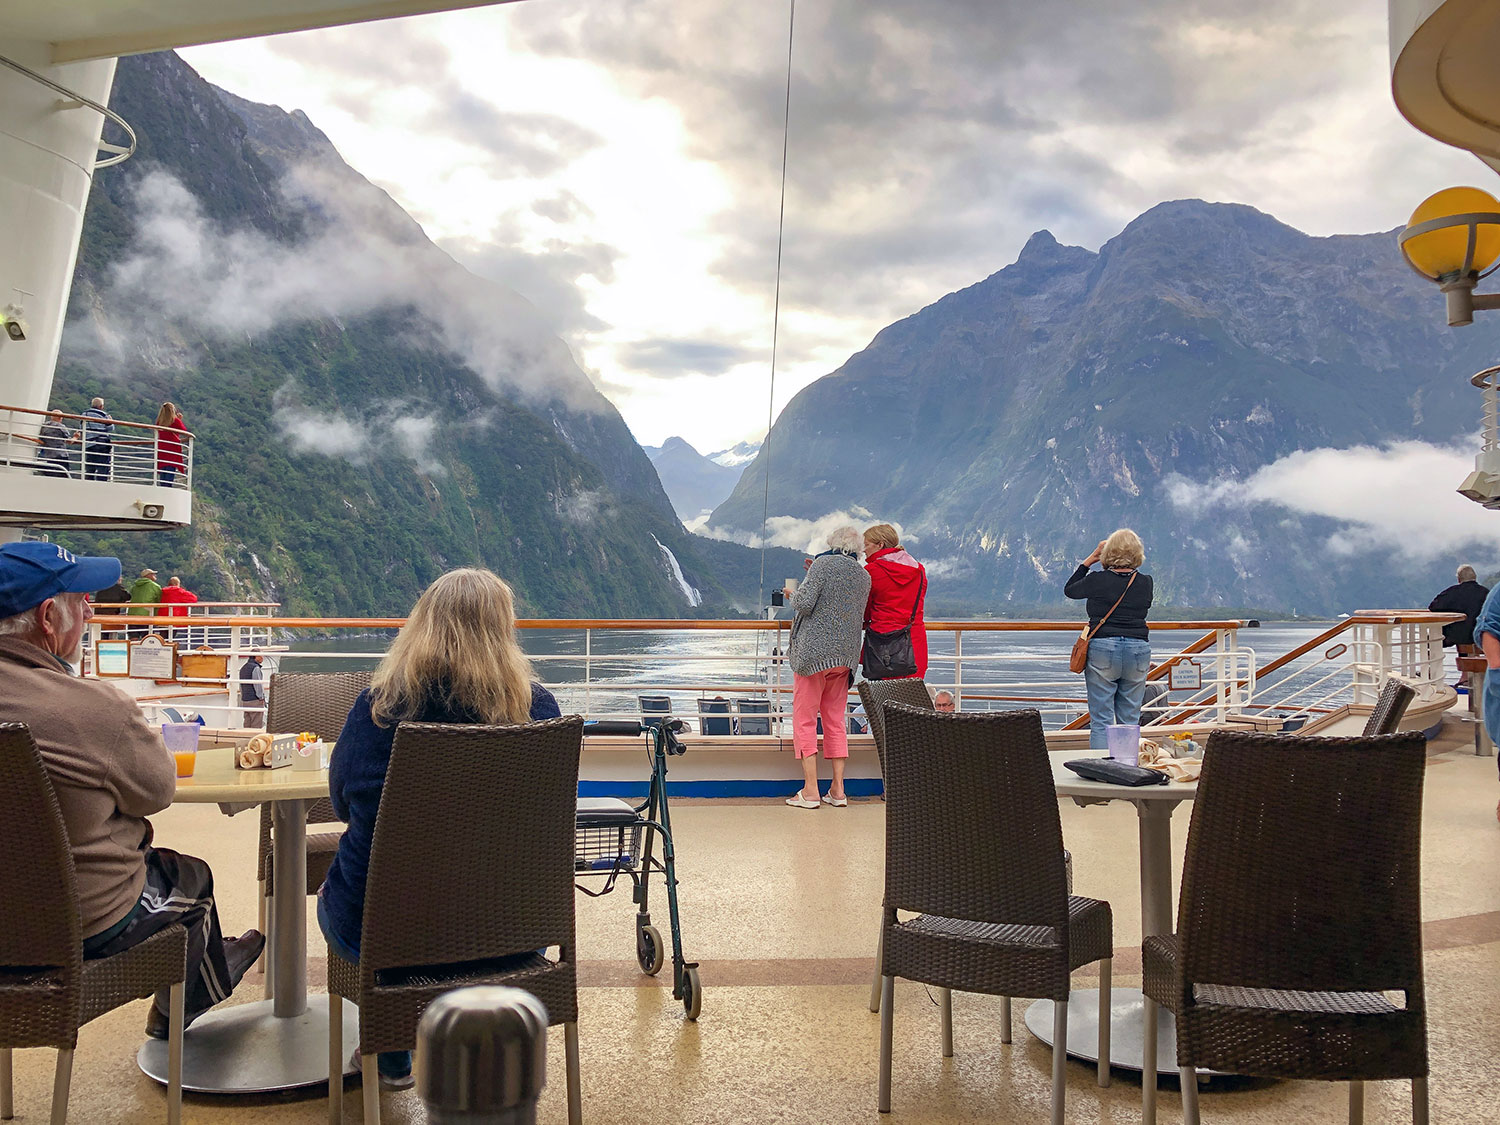 Morning at Milford Sound viewed from aboard the Golden Princess, Fiordland National Park in New Zealand